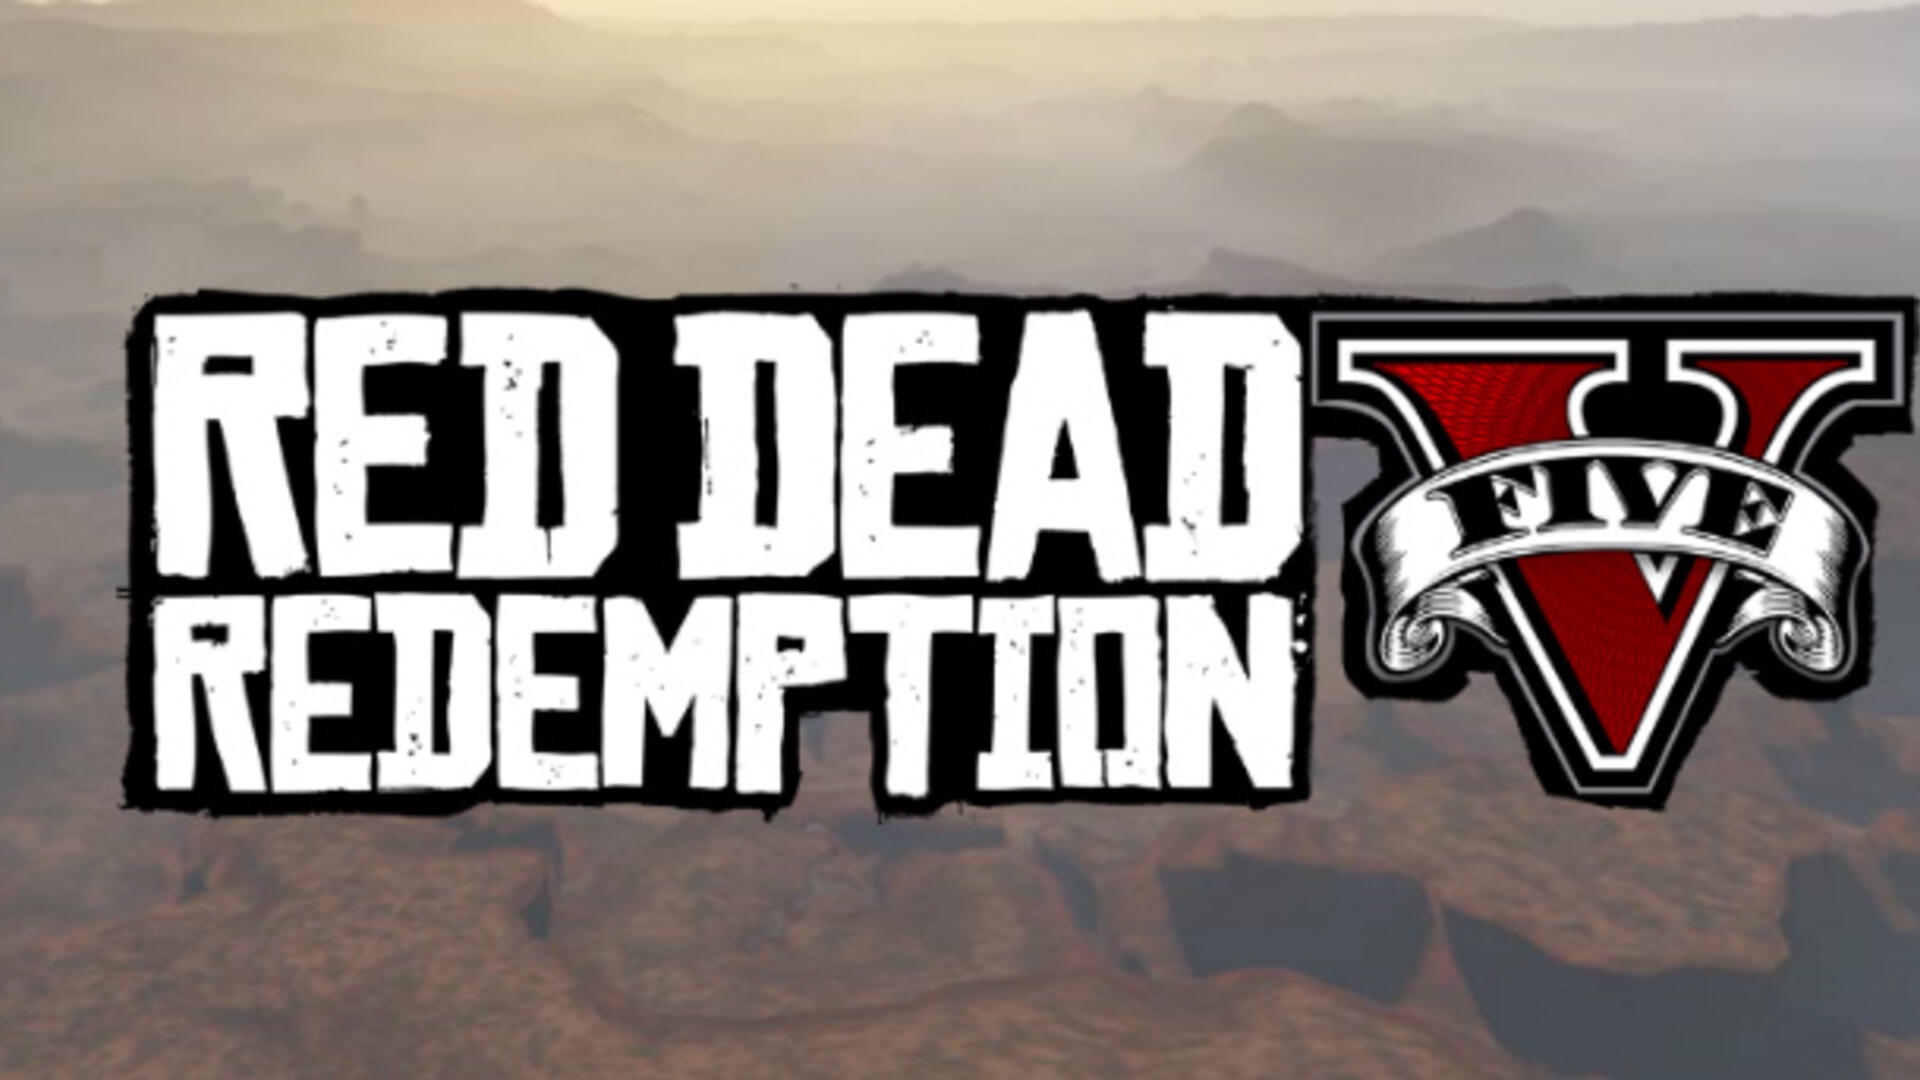 Modders Take A Shot At Recreating Red Dead Redemption in GTA